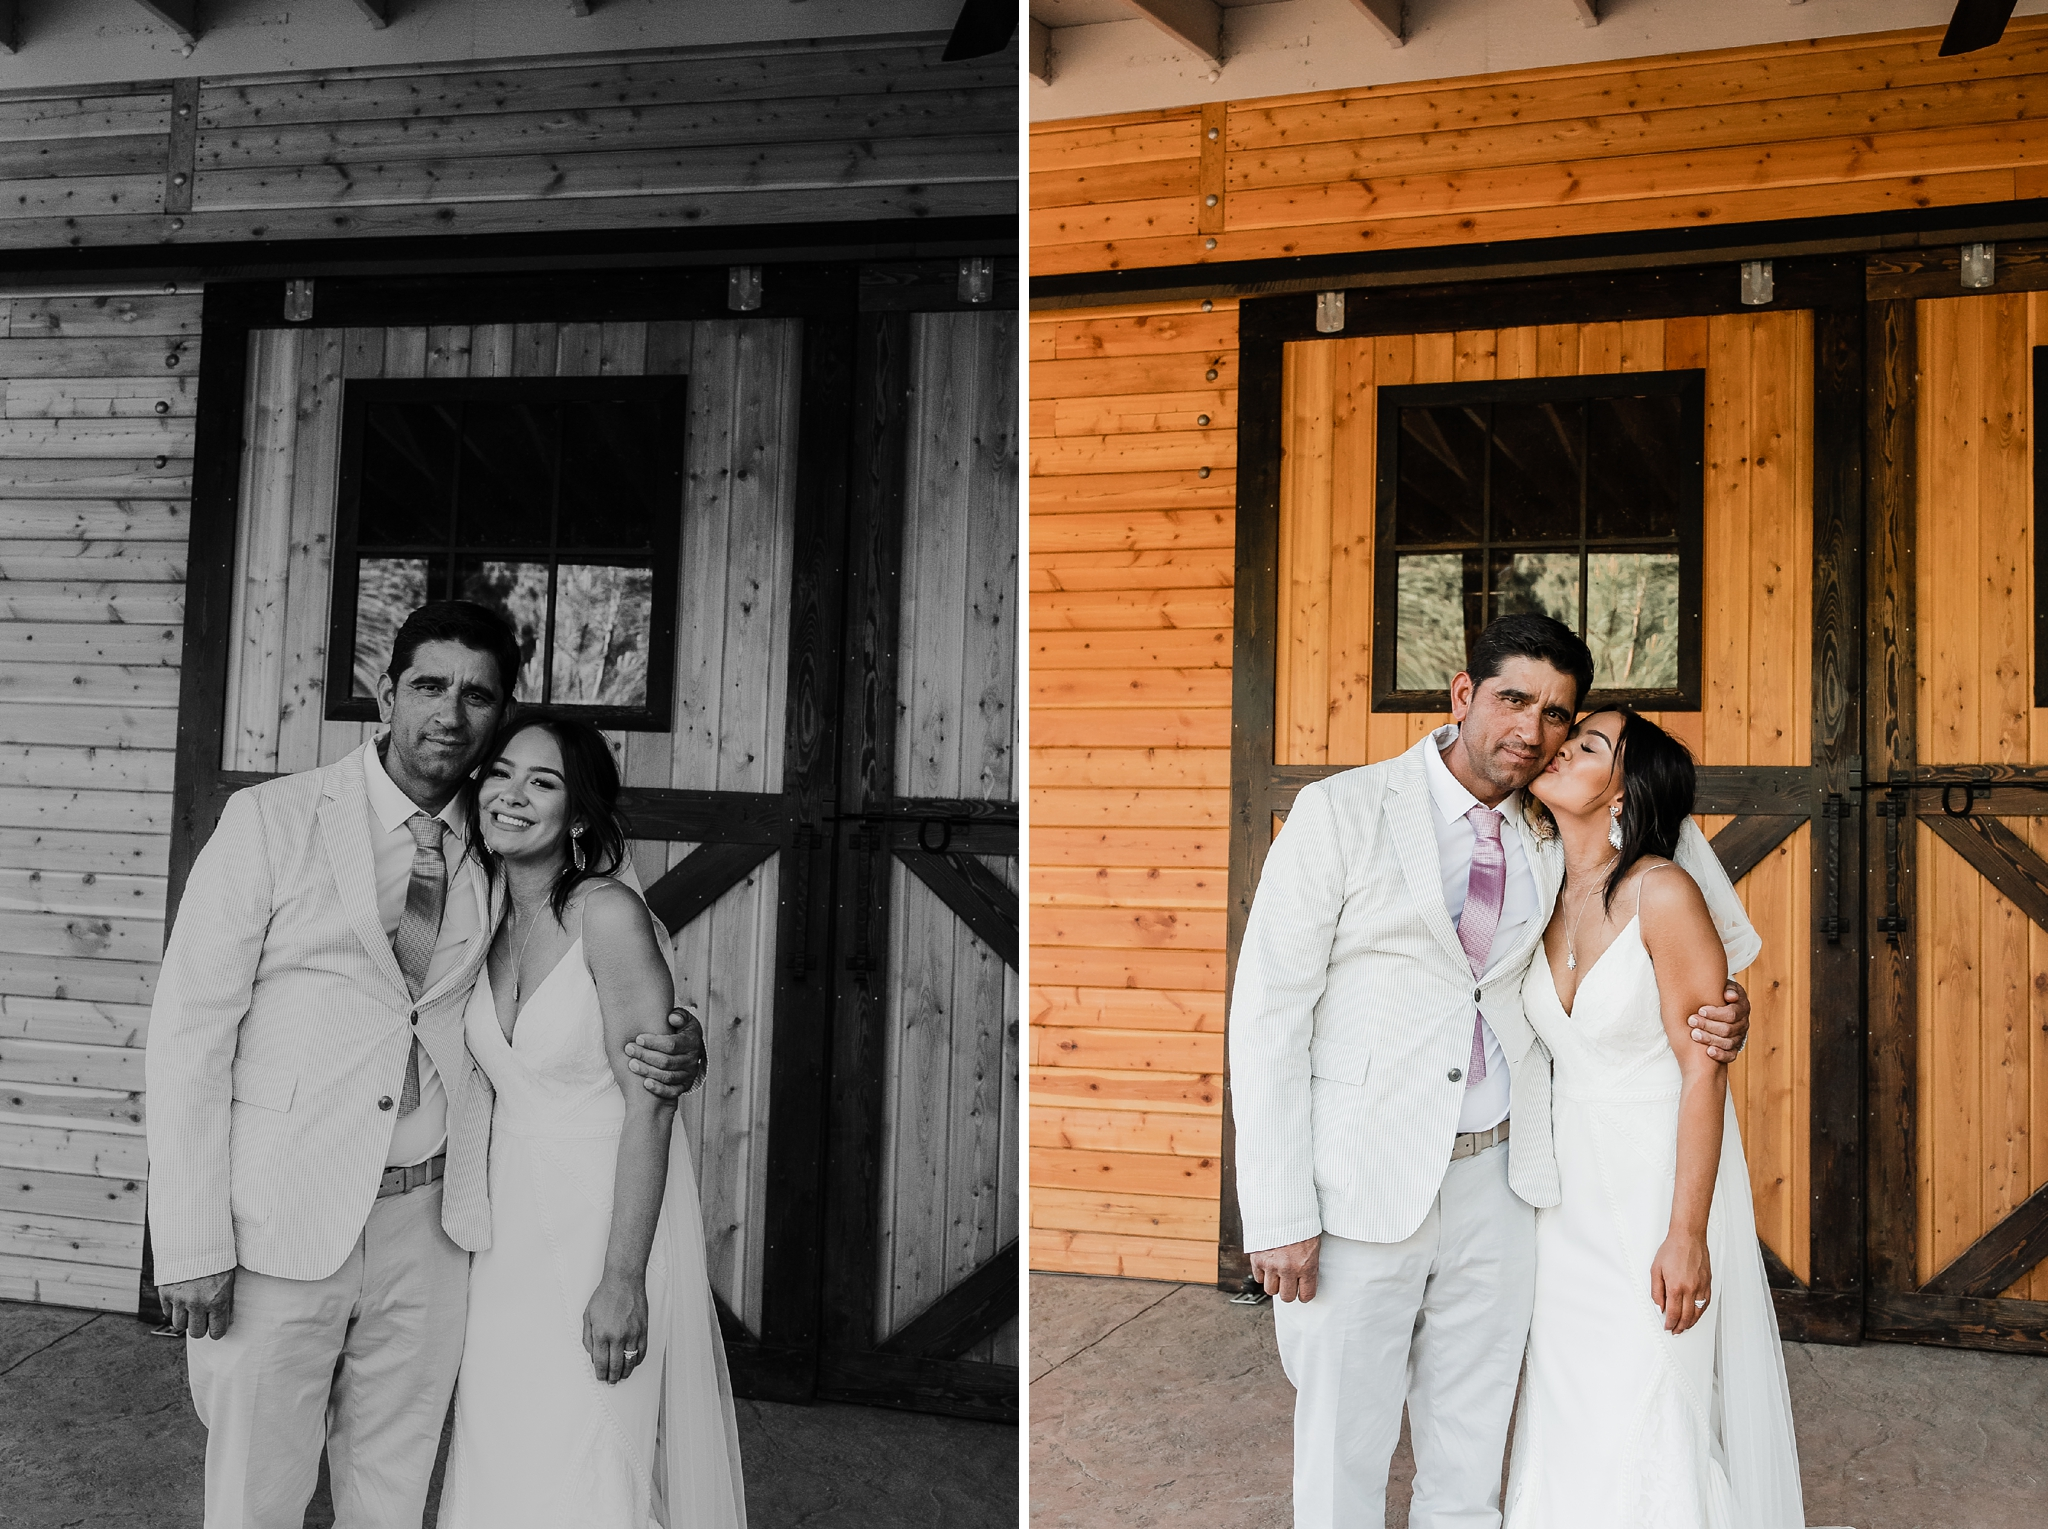 Alicia+lucia+photography+-+albuquerque+wedding+photographer+-+santa+fe+wedding+photography+-+new+mexico+wedding+photographer+-+new+mexico+wedding+-+new+mexico+wedding+-+barn+wedding+-+enchanted+vine+barn+wedding+-+ruidoso+wedding_0115.jpg